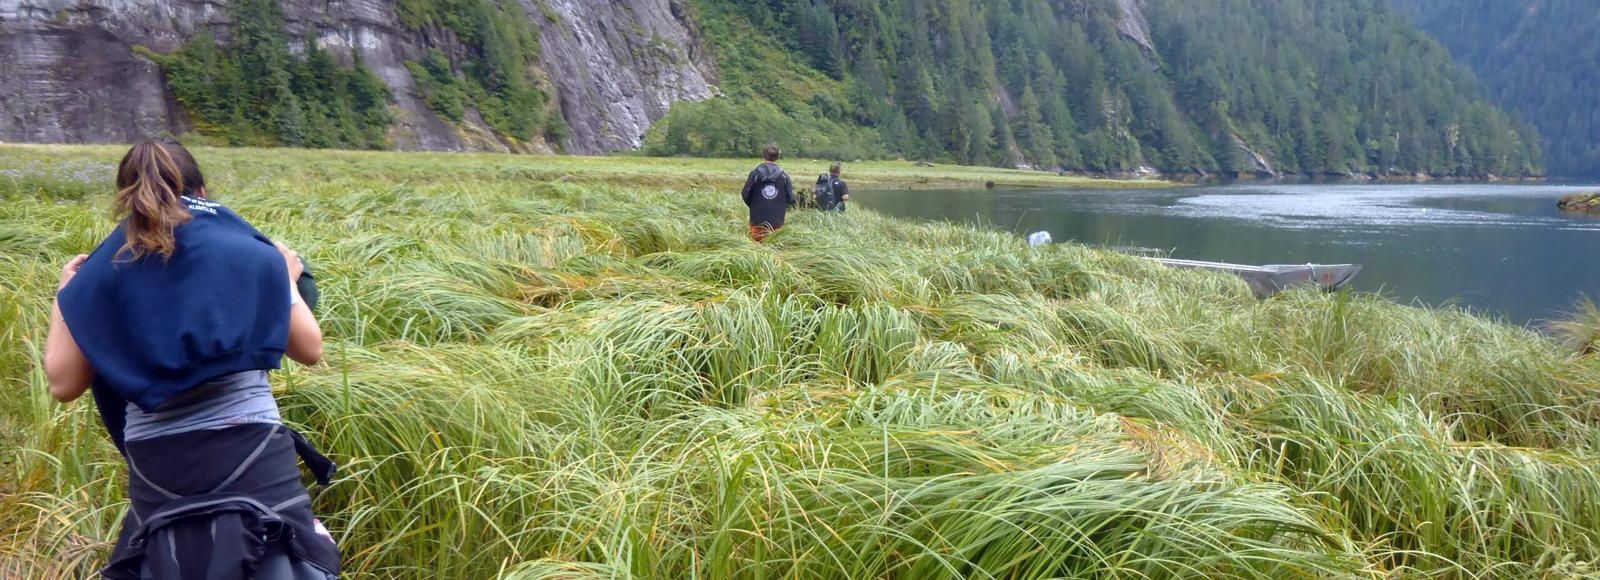 Four youth walk through tall grass. To the right of them is a wide river, ahead of them are steep, forested mountain slopes.